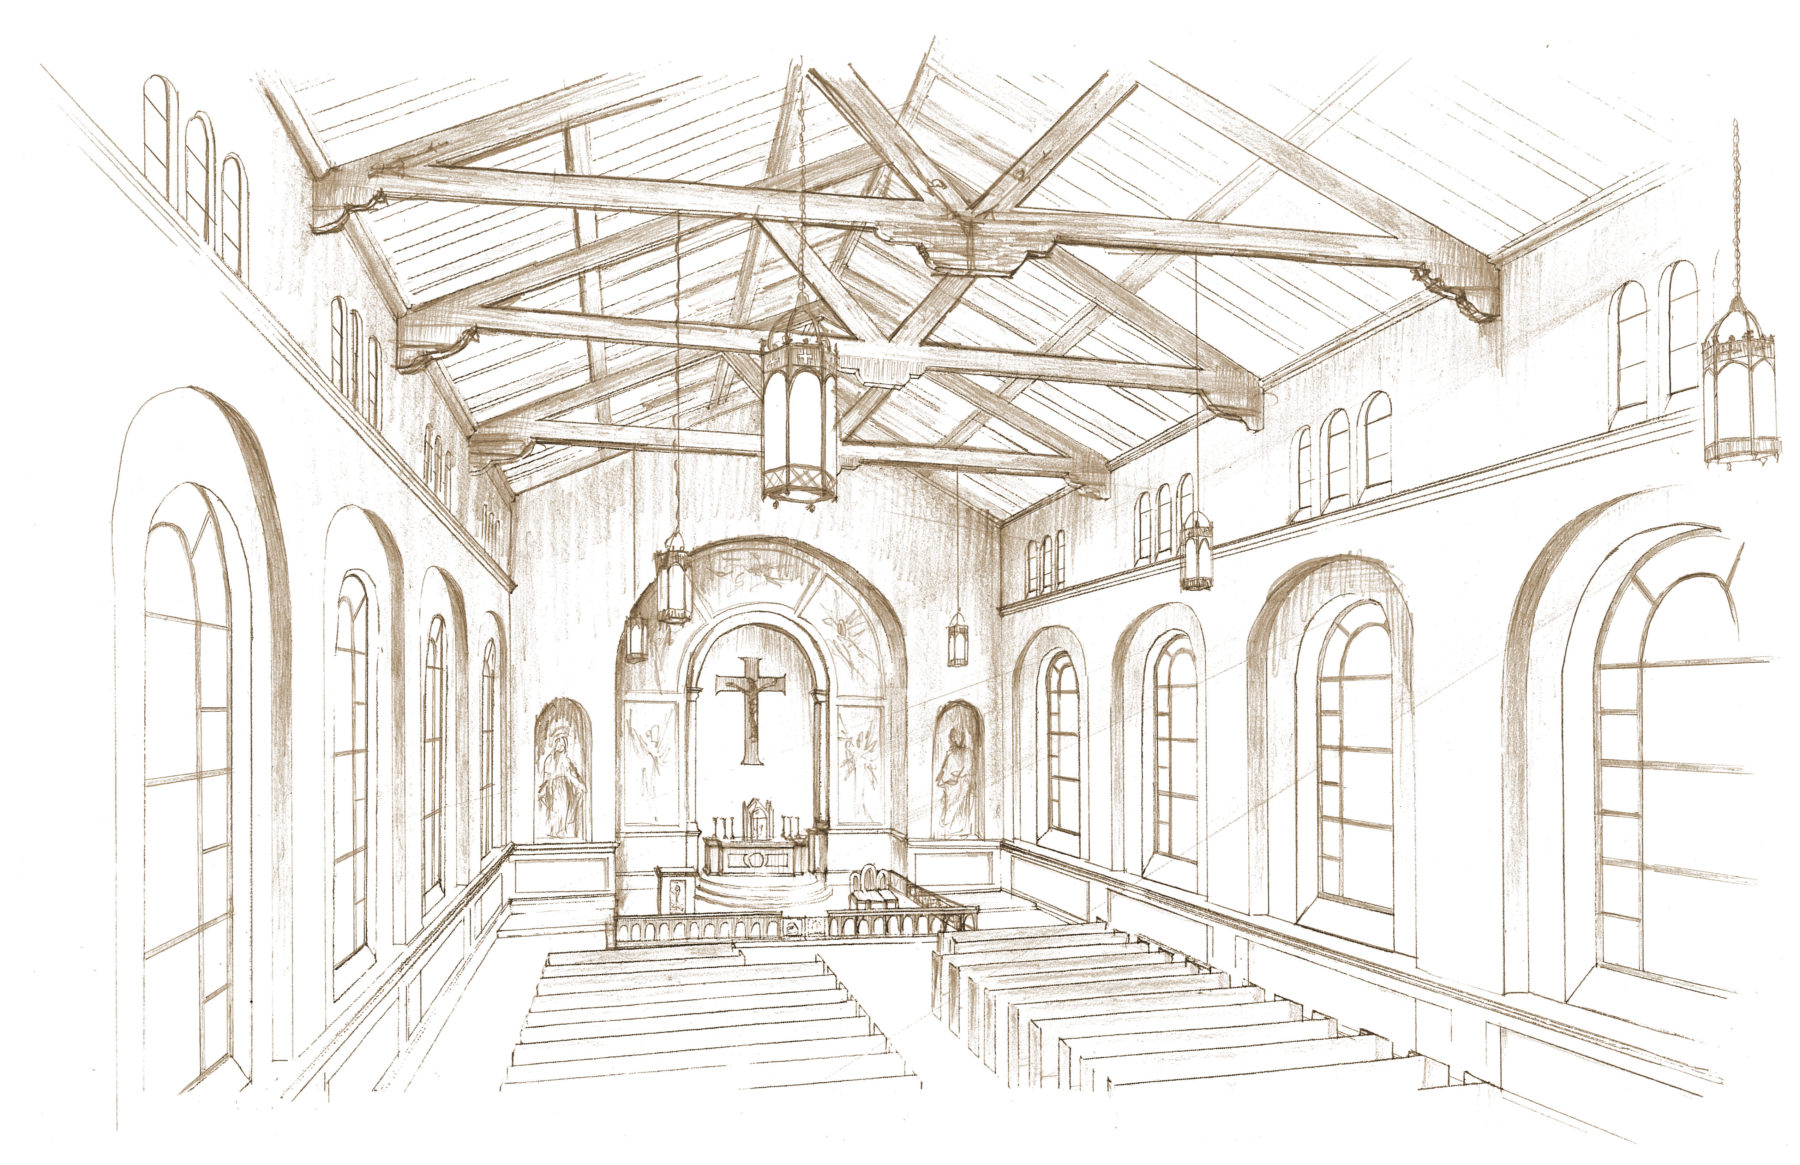 Interior perspective pencil rendering wooden timber truss ceiling church nave and arch windows by Harrison Design